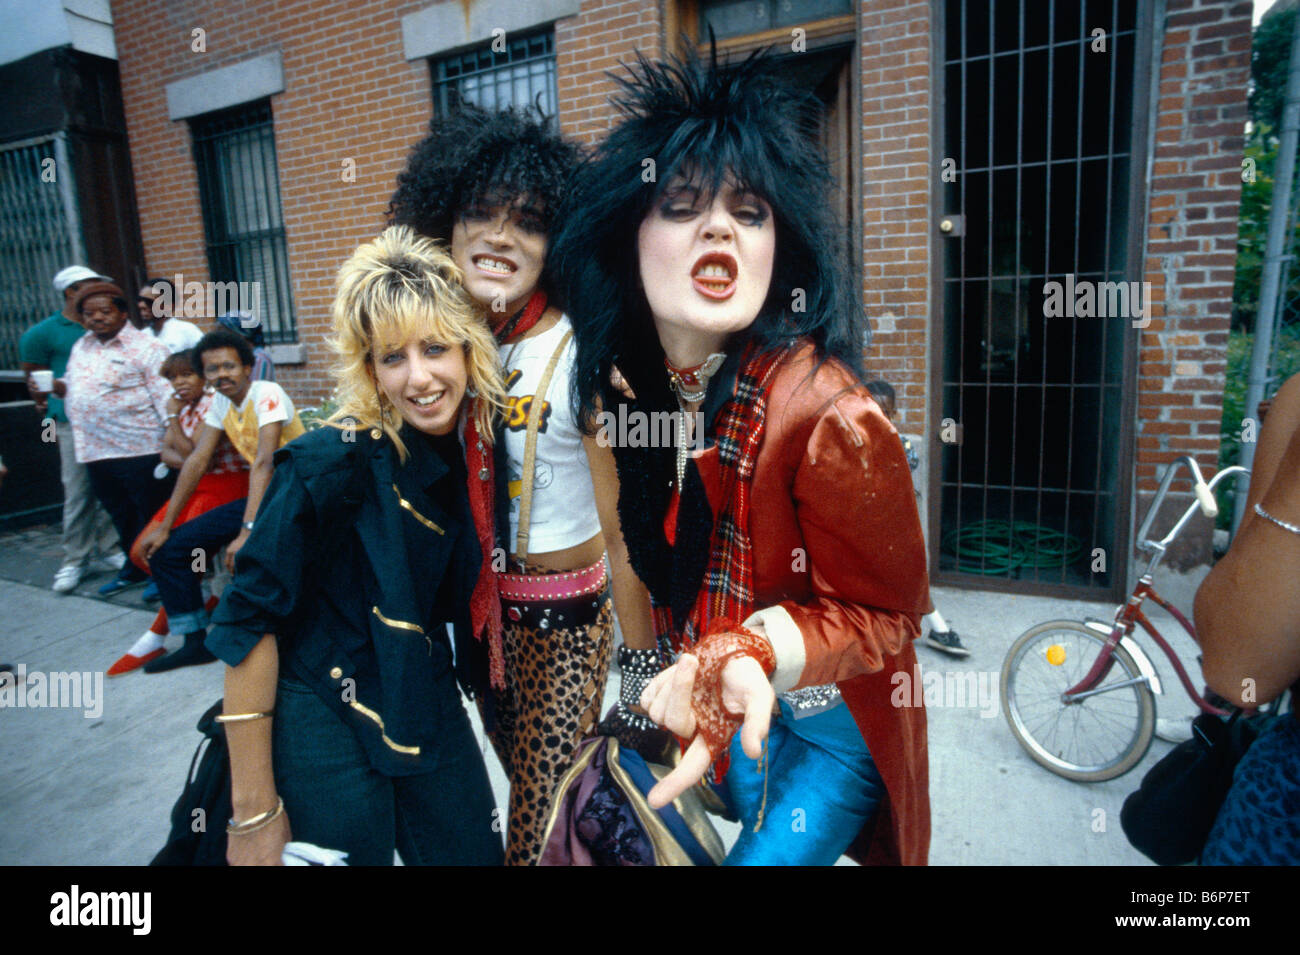 young fancy dressed punk people in Lower Eastside of Manhattan, New York, pull funny faces - Stock Image